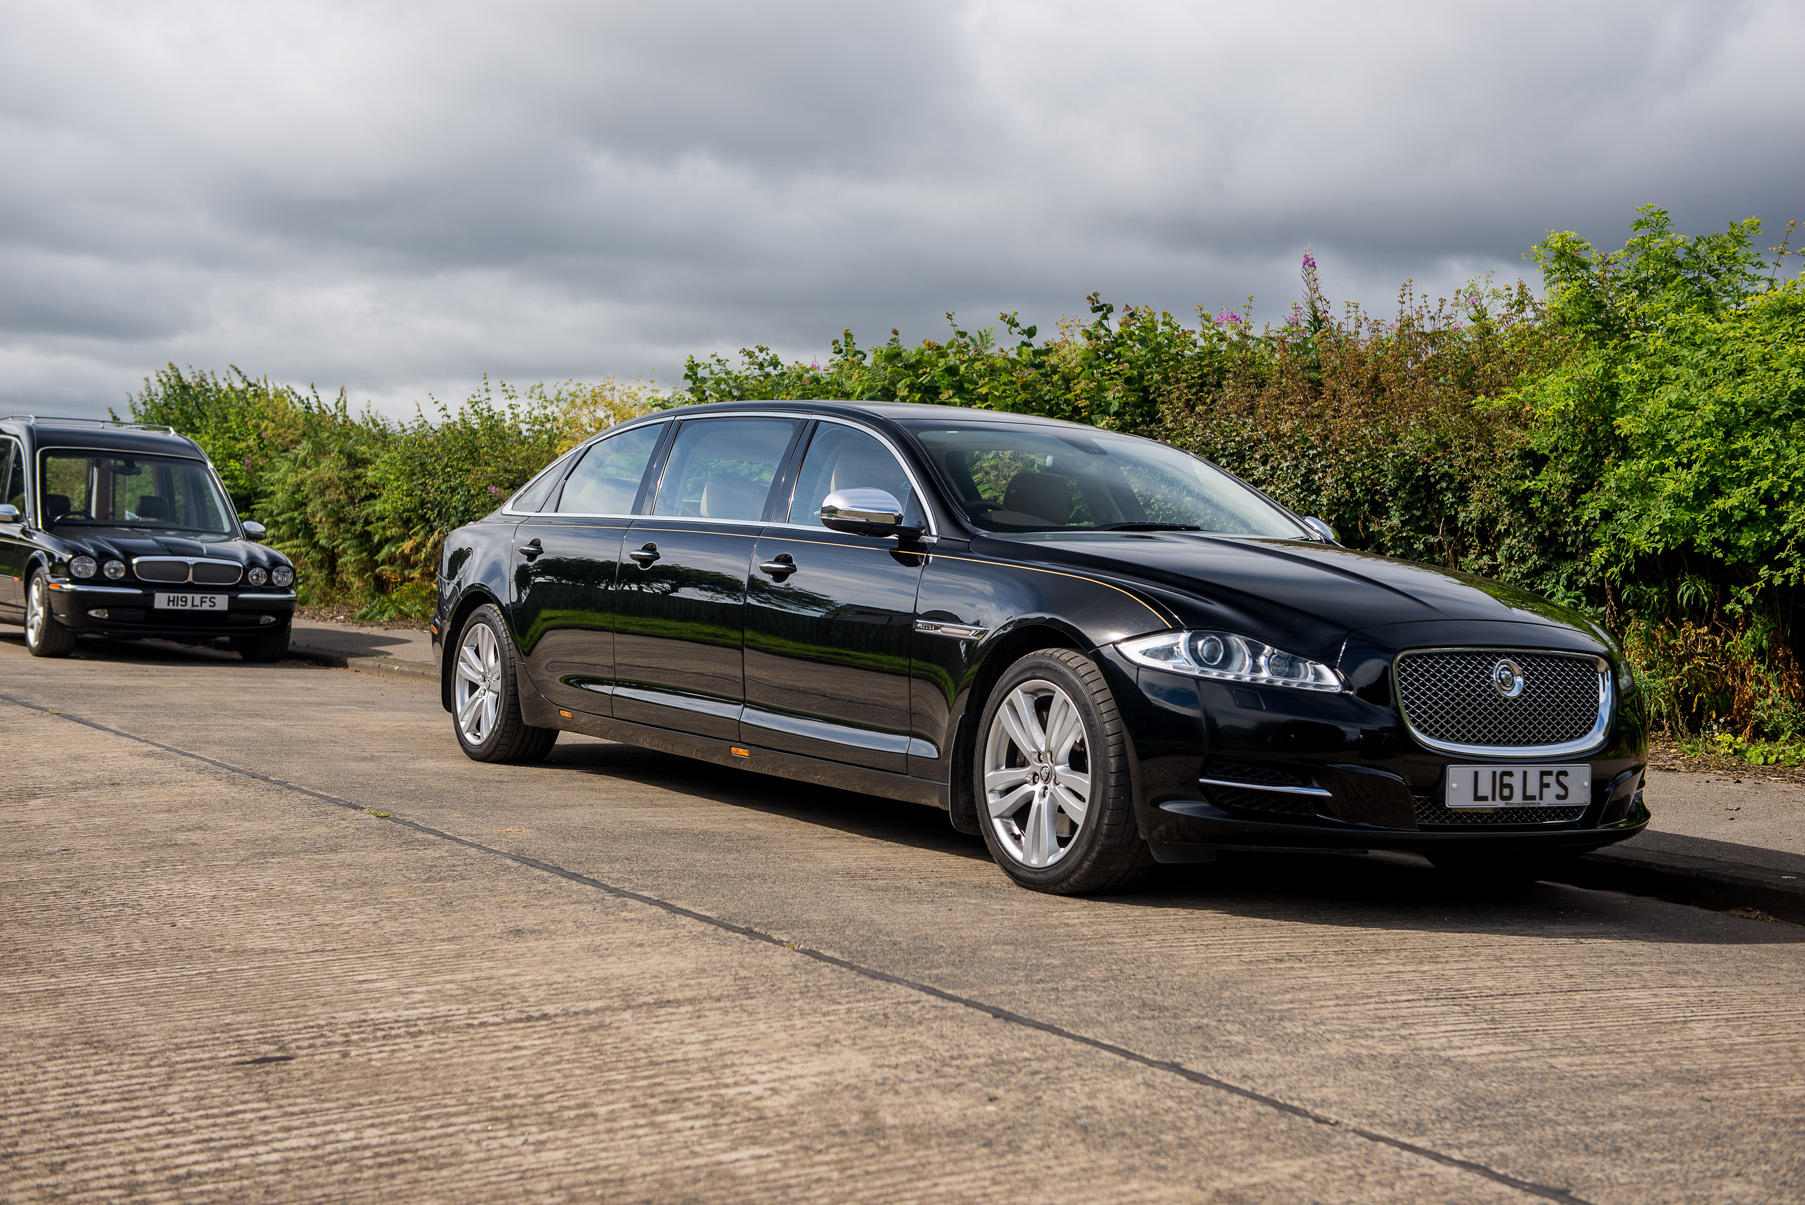 New jaguar limo hire